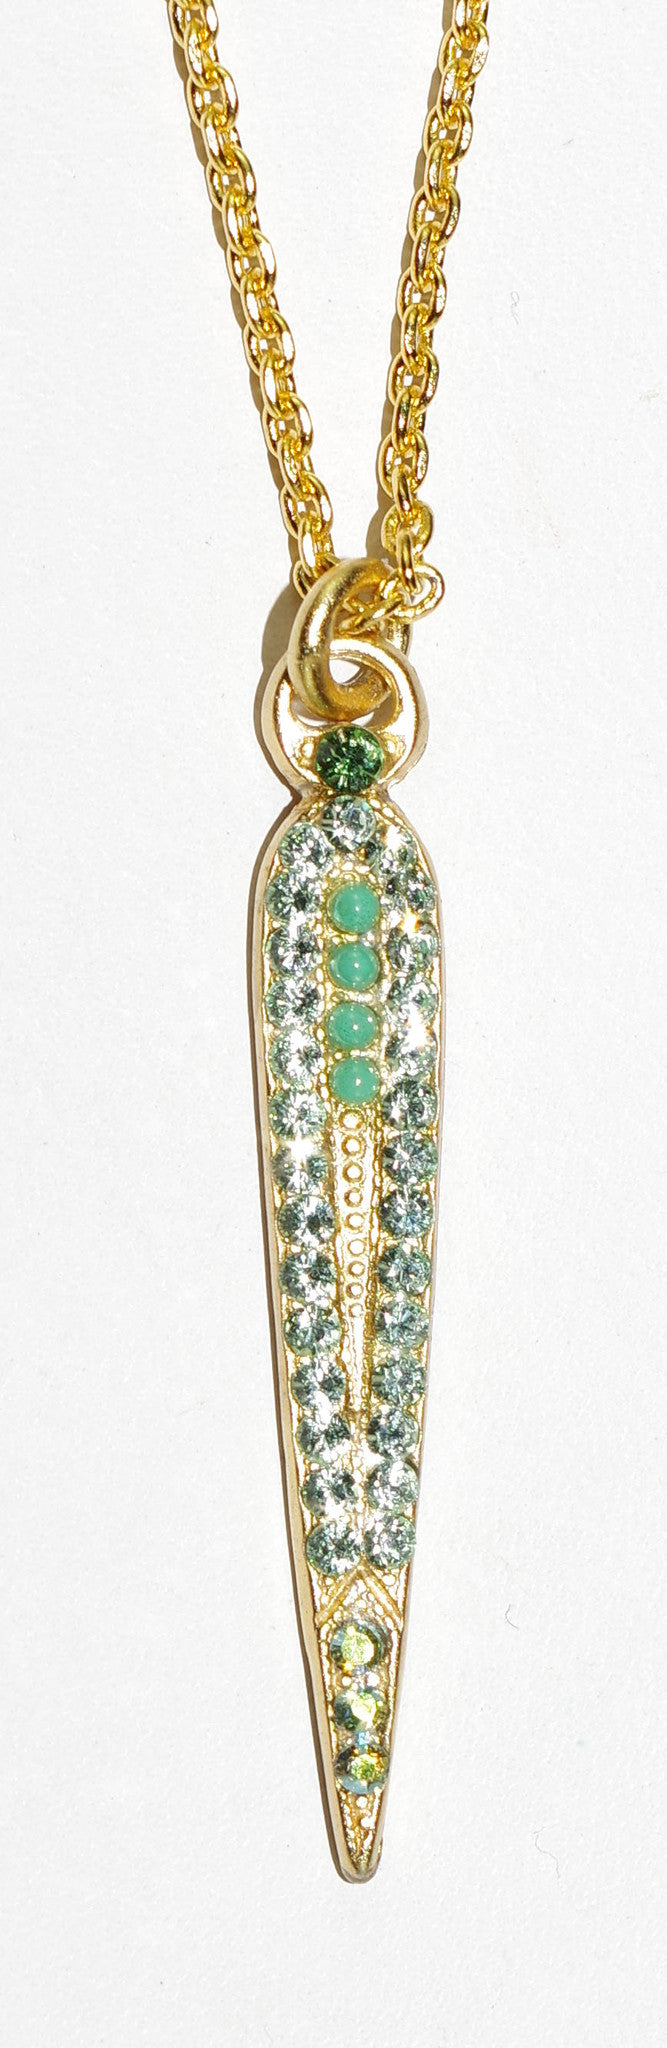 "MARIANA PENDANT OASIS:  green stones in yellow gold setting, 1.25"" pendant, 18"" adjustable chain"